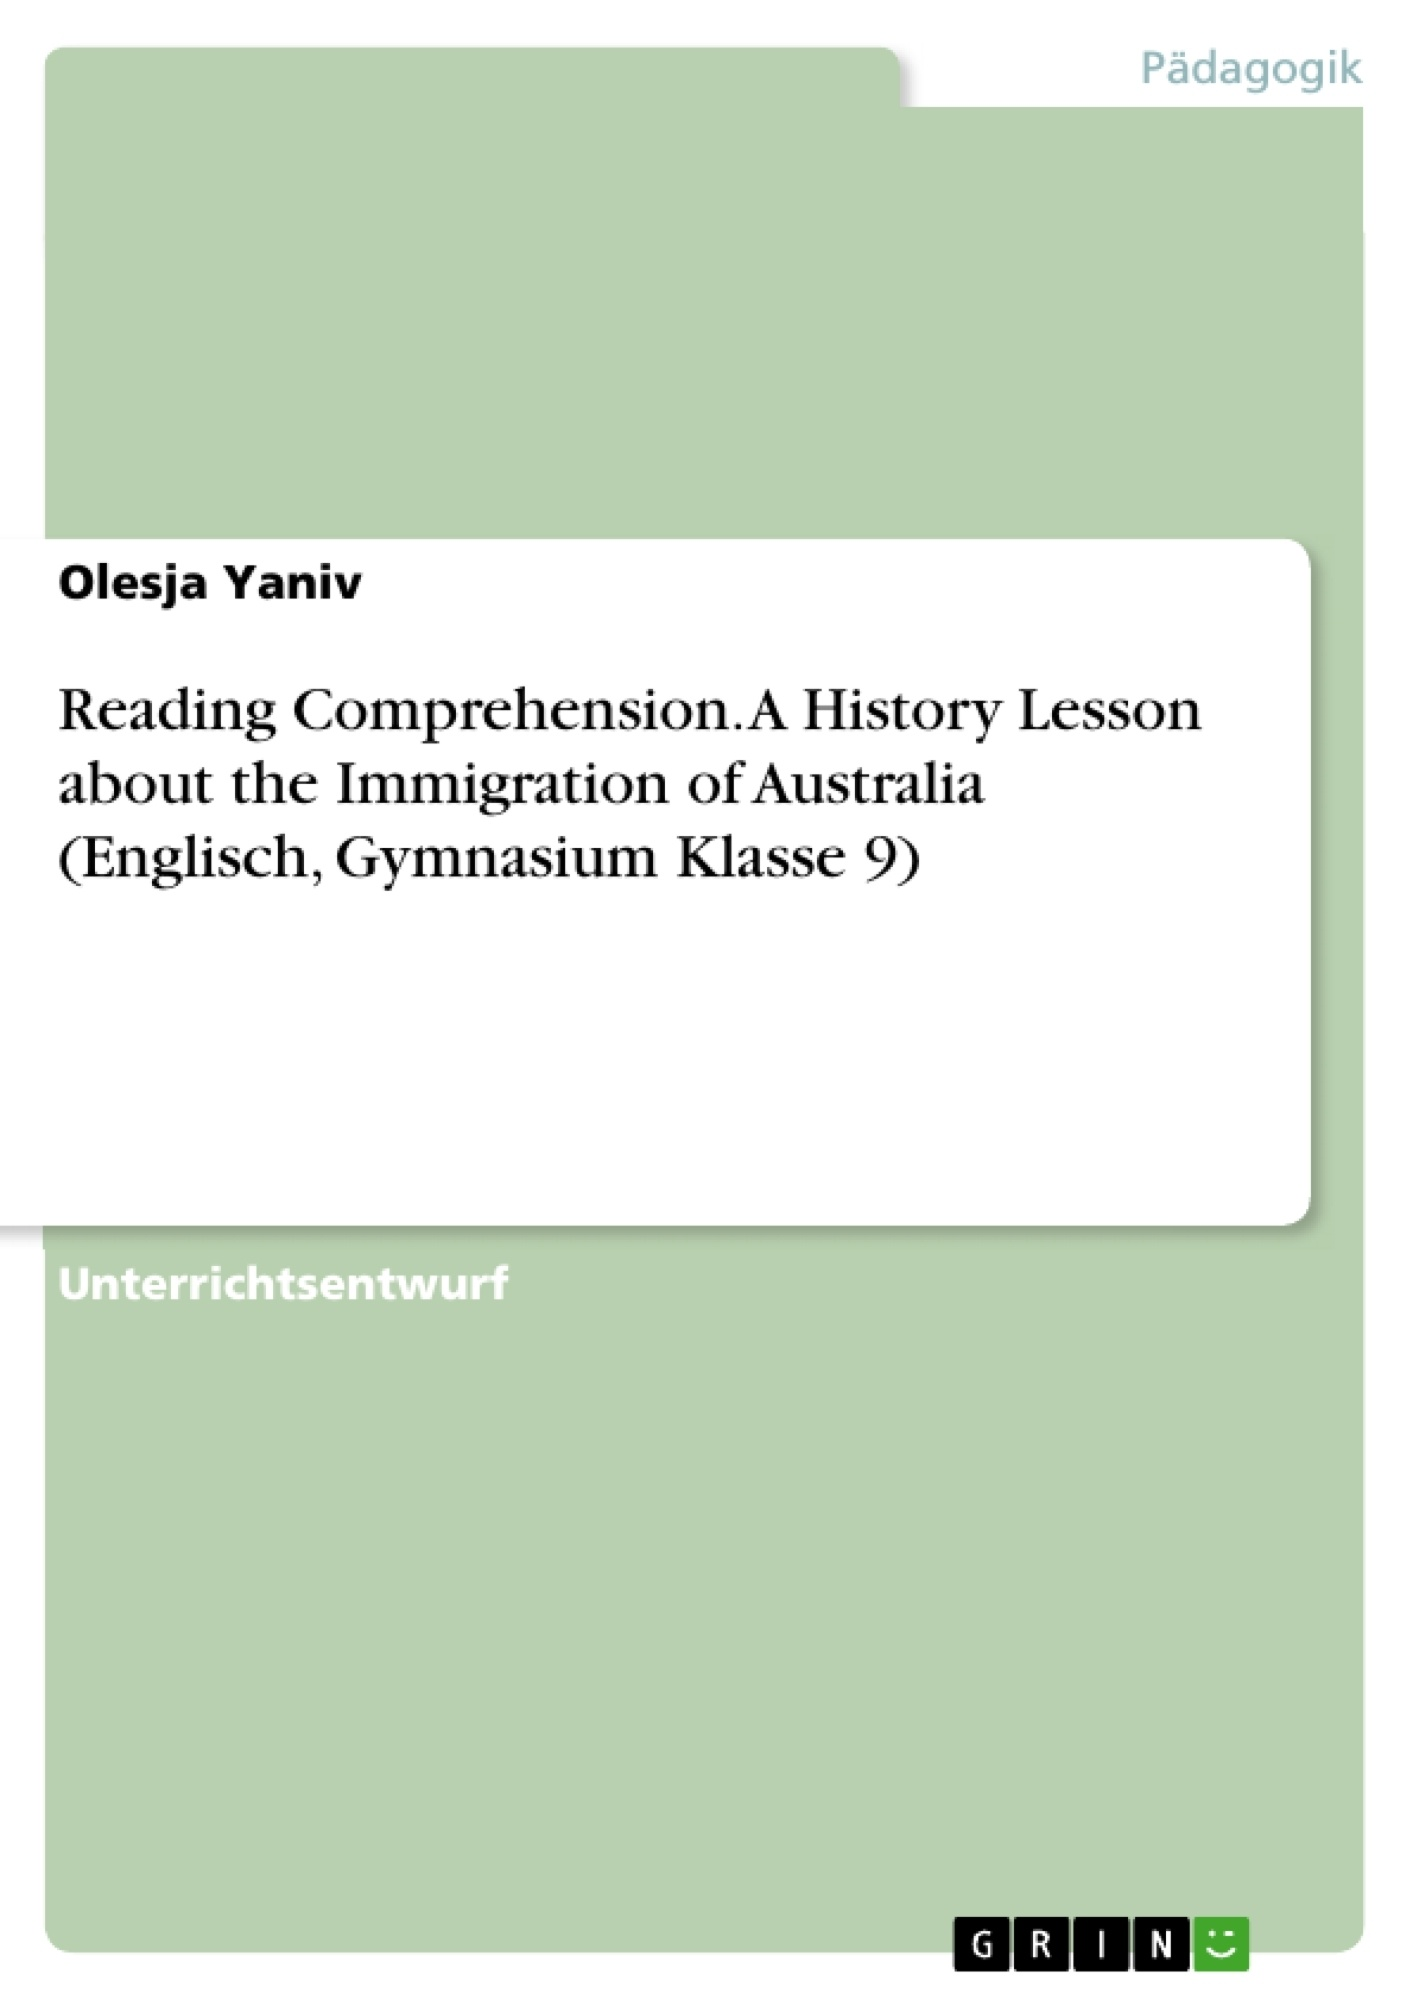 Titel: Reading Comprehension. A History Lesson about the Immigration of Australia (Englisch, Gymnasium Klasse 9)